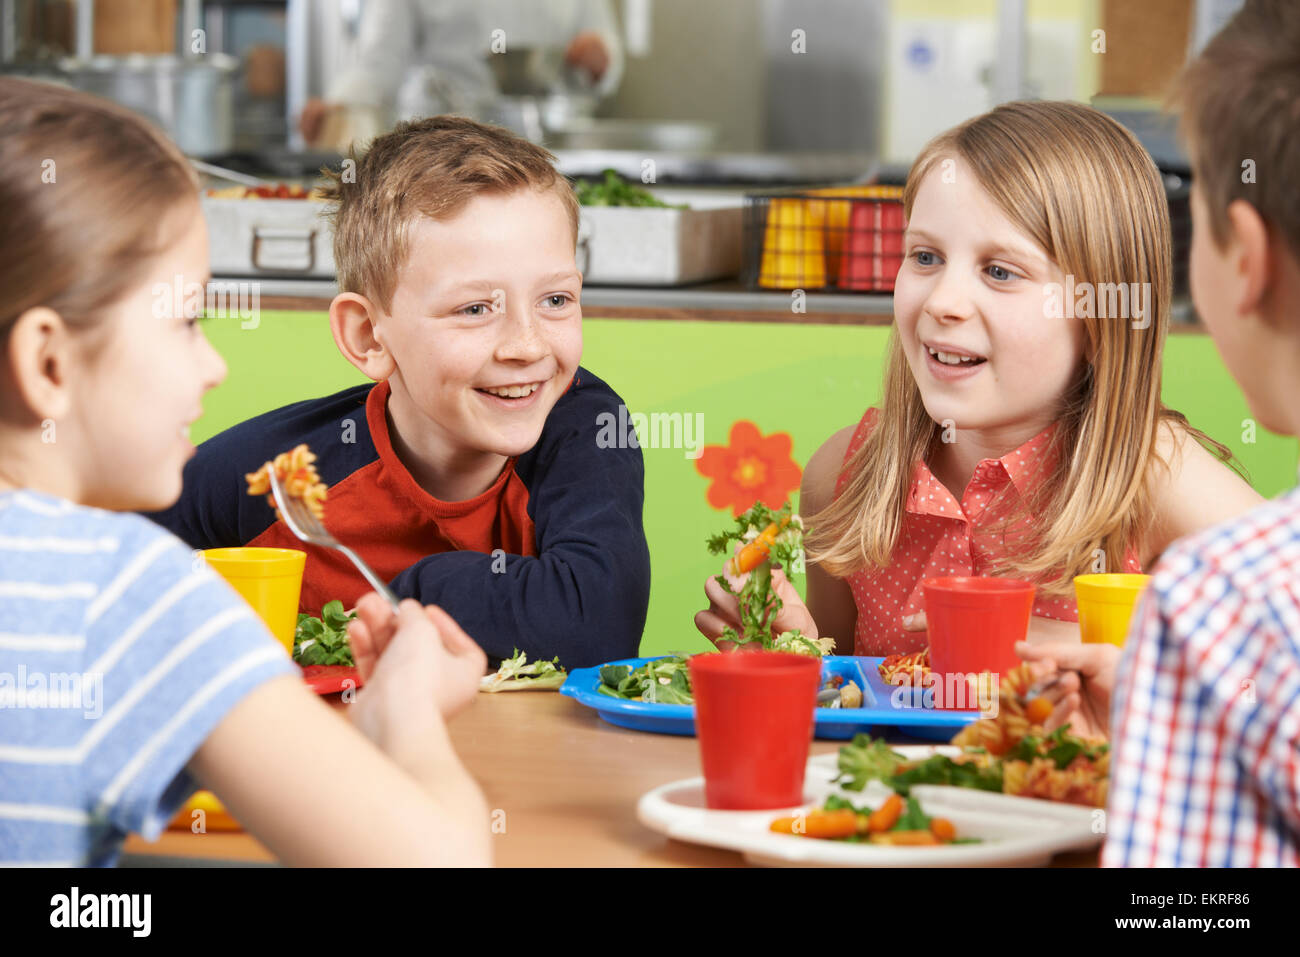 Group Of Pupils Sitting At Table In School Cafeteria Eating Lunch - Stock Image